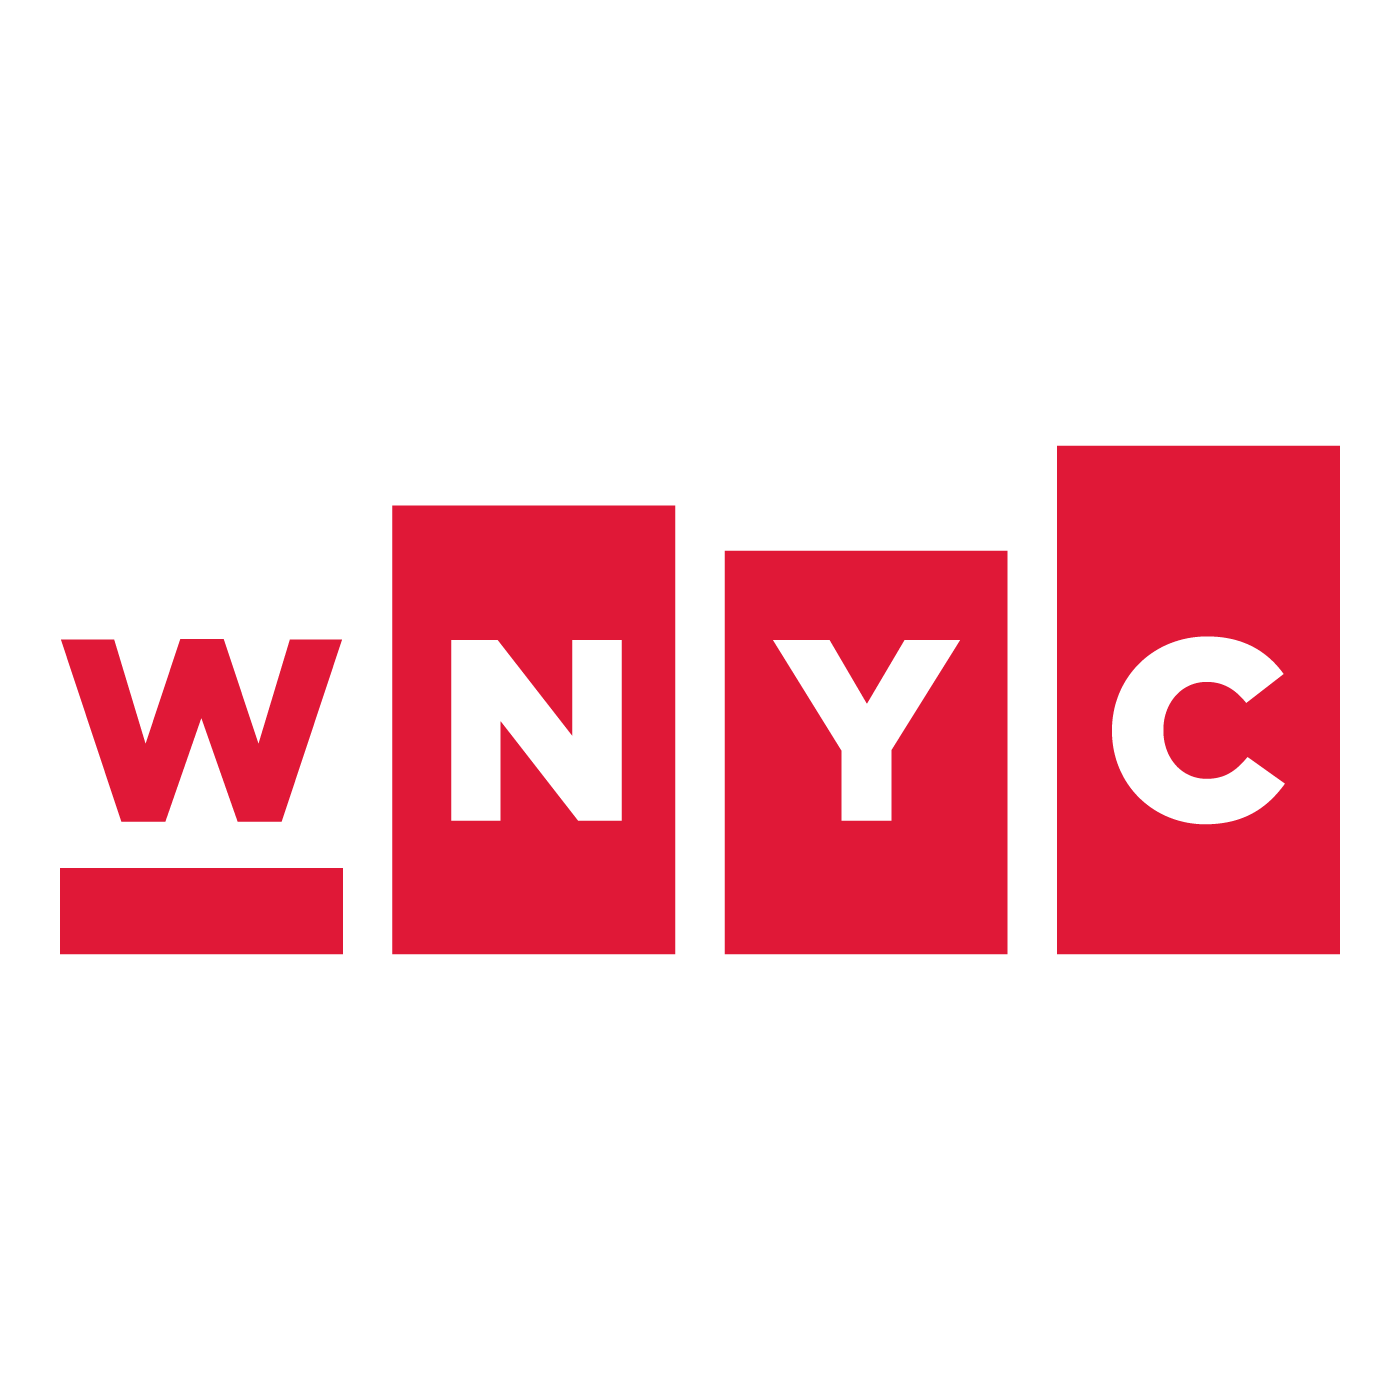 WNYC is New York City's premiere public radio station, producing beloved original programs like Radiolab and The Brian Lehrer Show.   Read more at wnyc.org